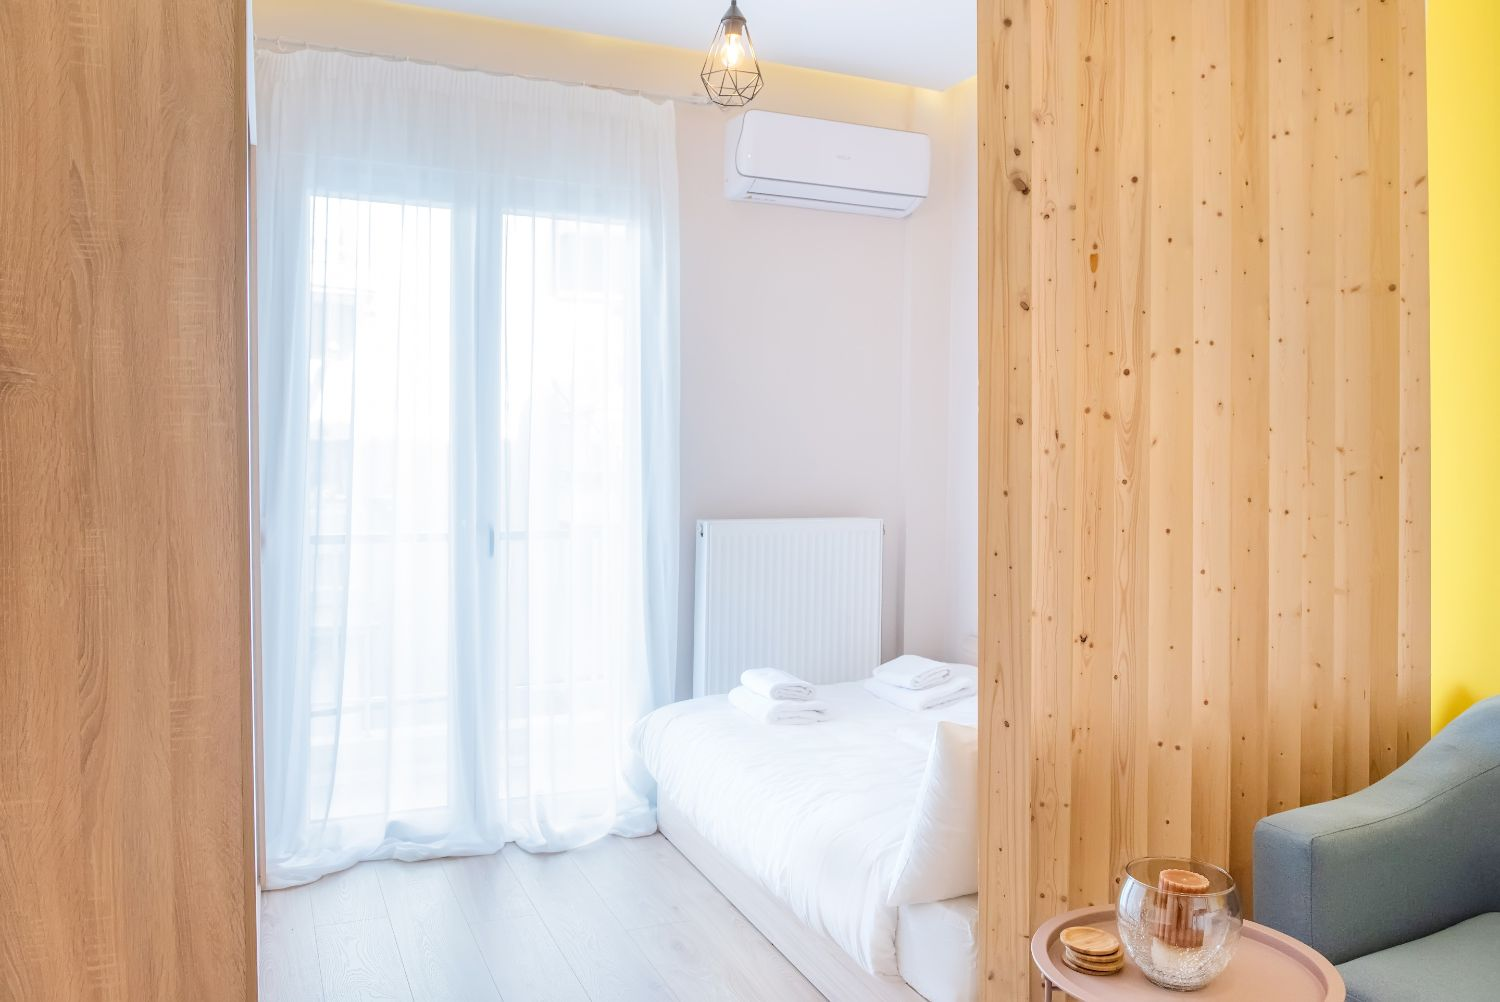 Bedroom area with 1 double bed